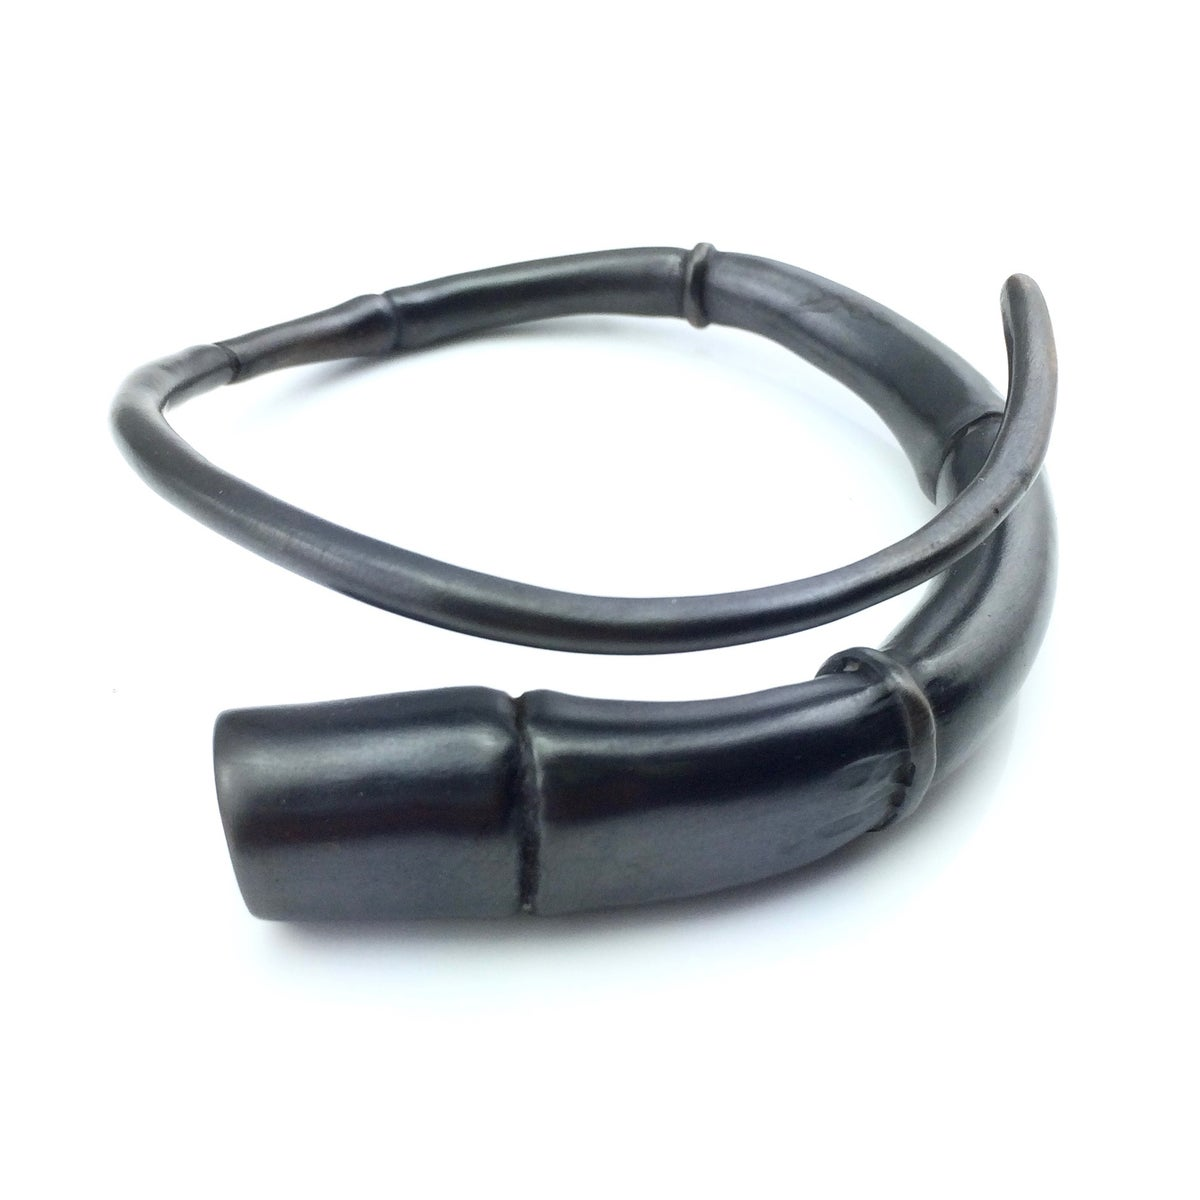 Image of Black Tendril Bangle Bracelet 07